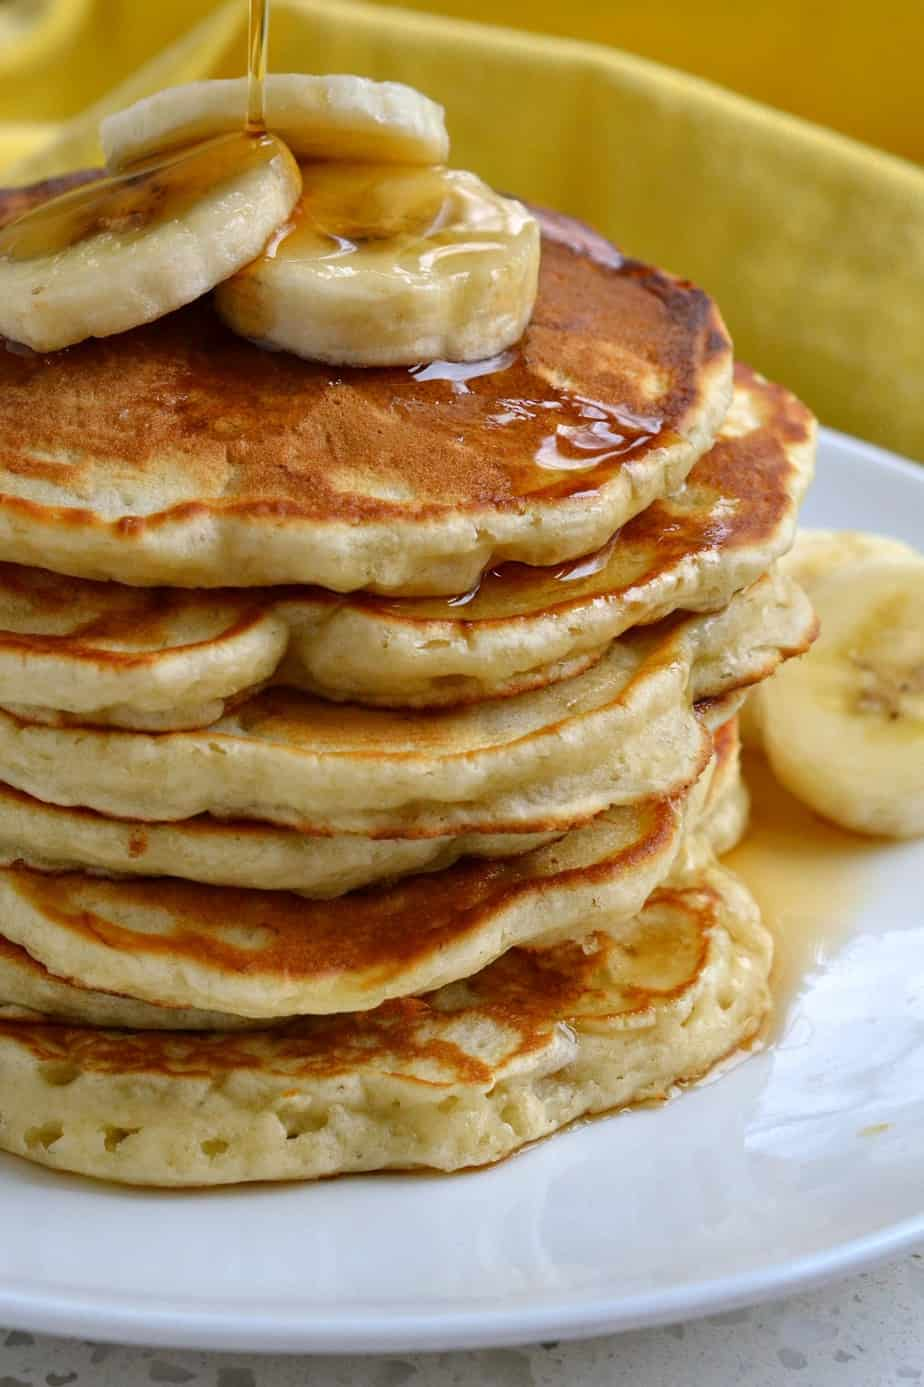 These light fluffy made from scratch buttermilk banana pancakes are hard to resist.